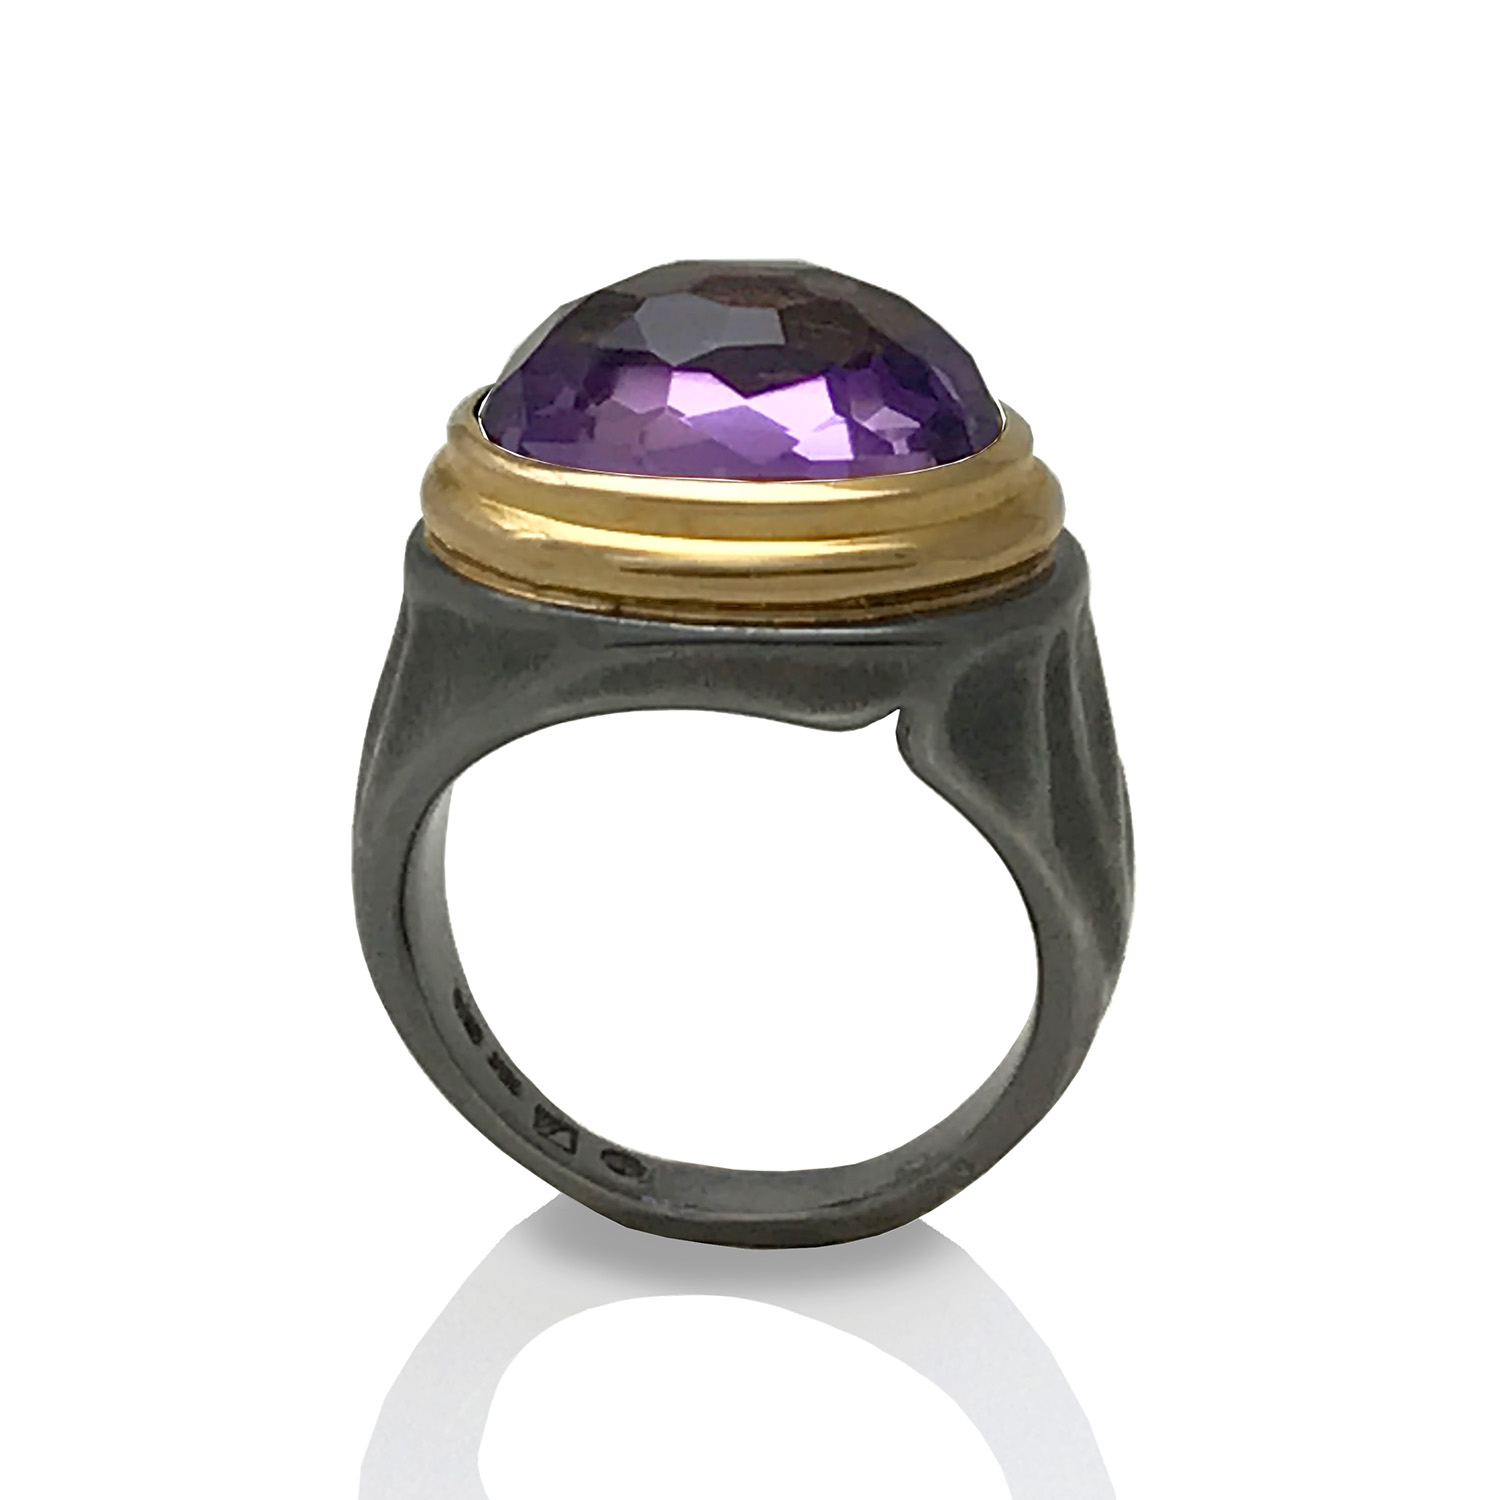 Amethyst Gem Lock Ring by K.Mita